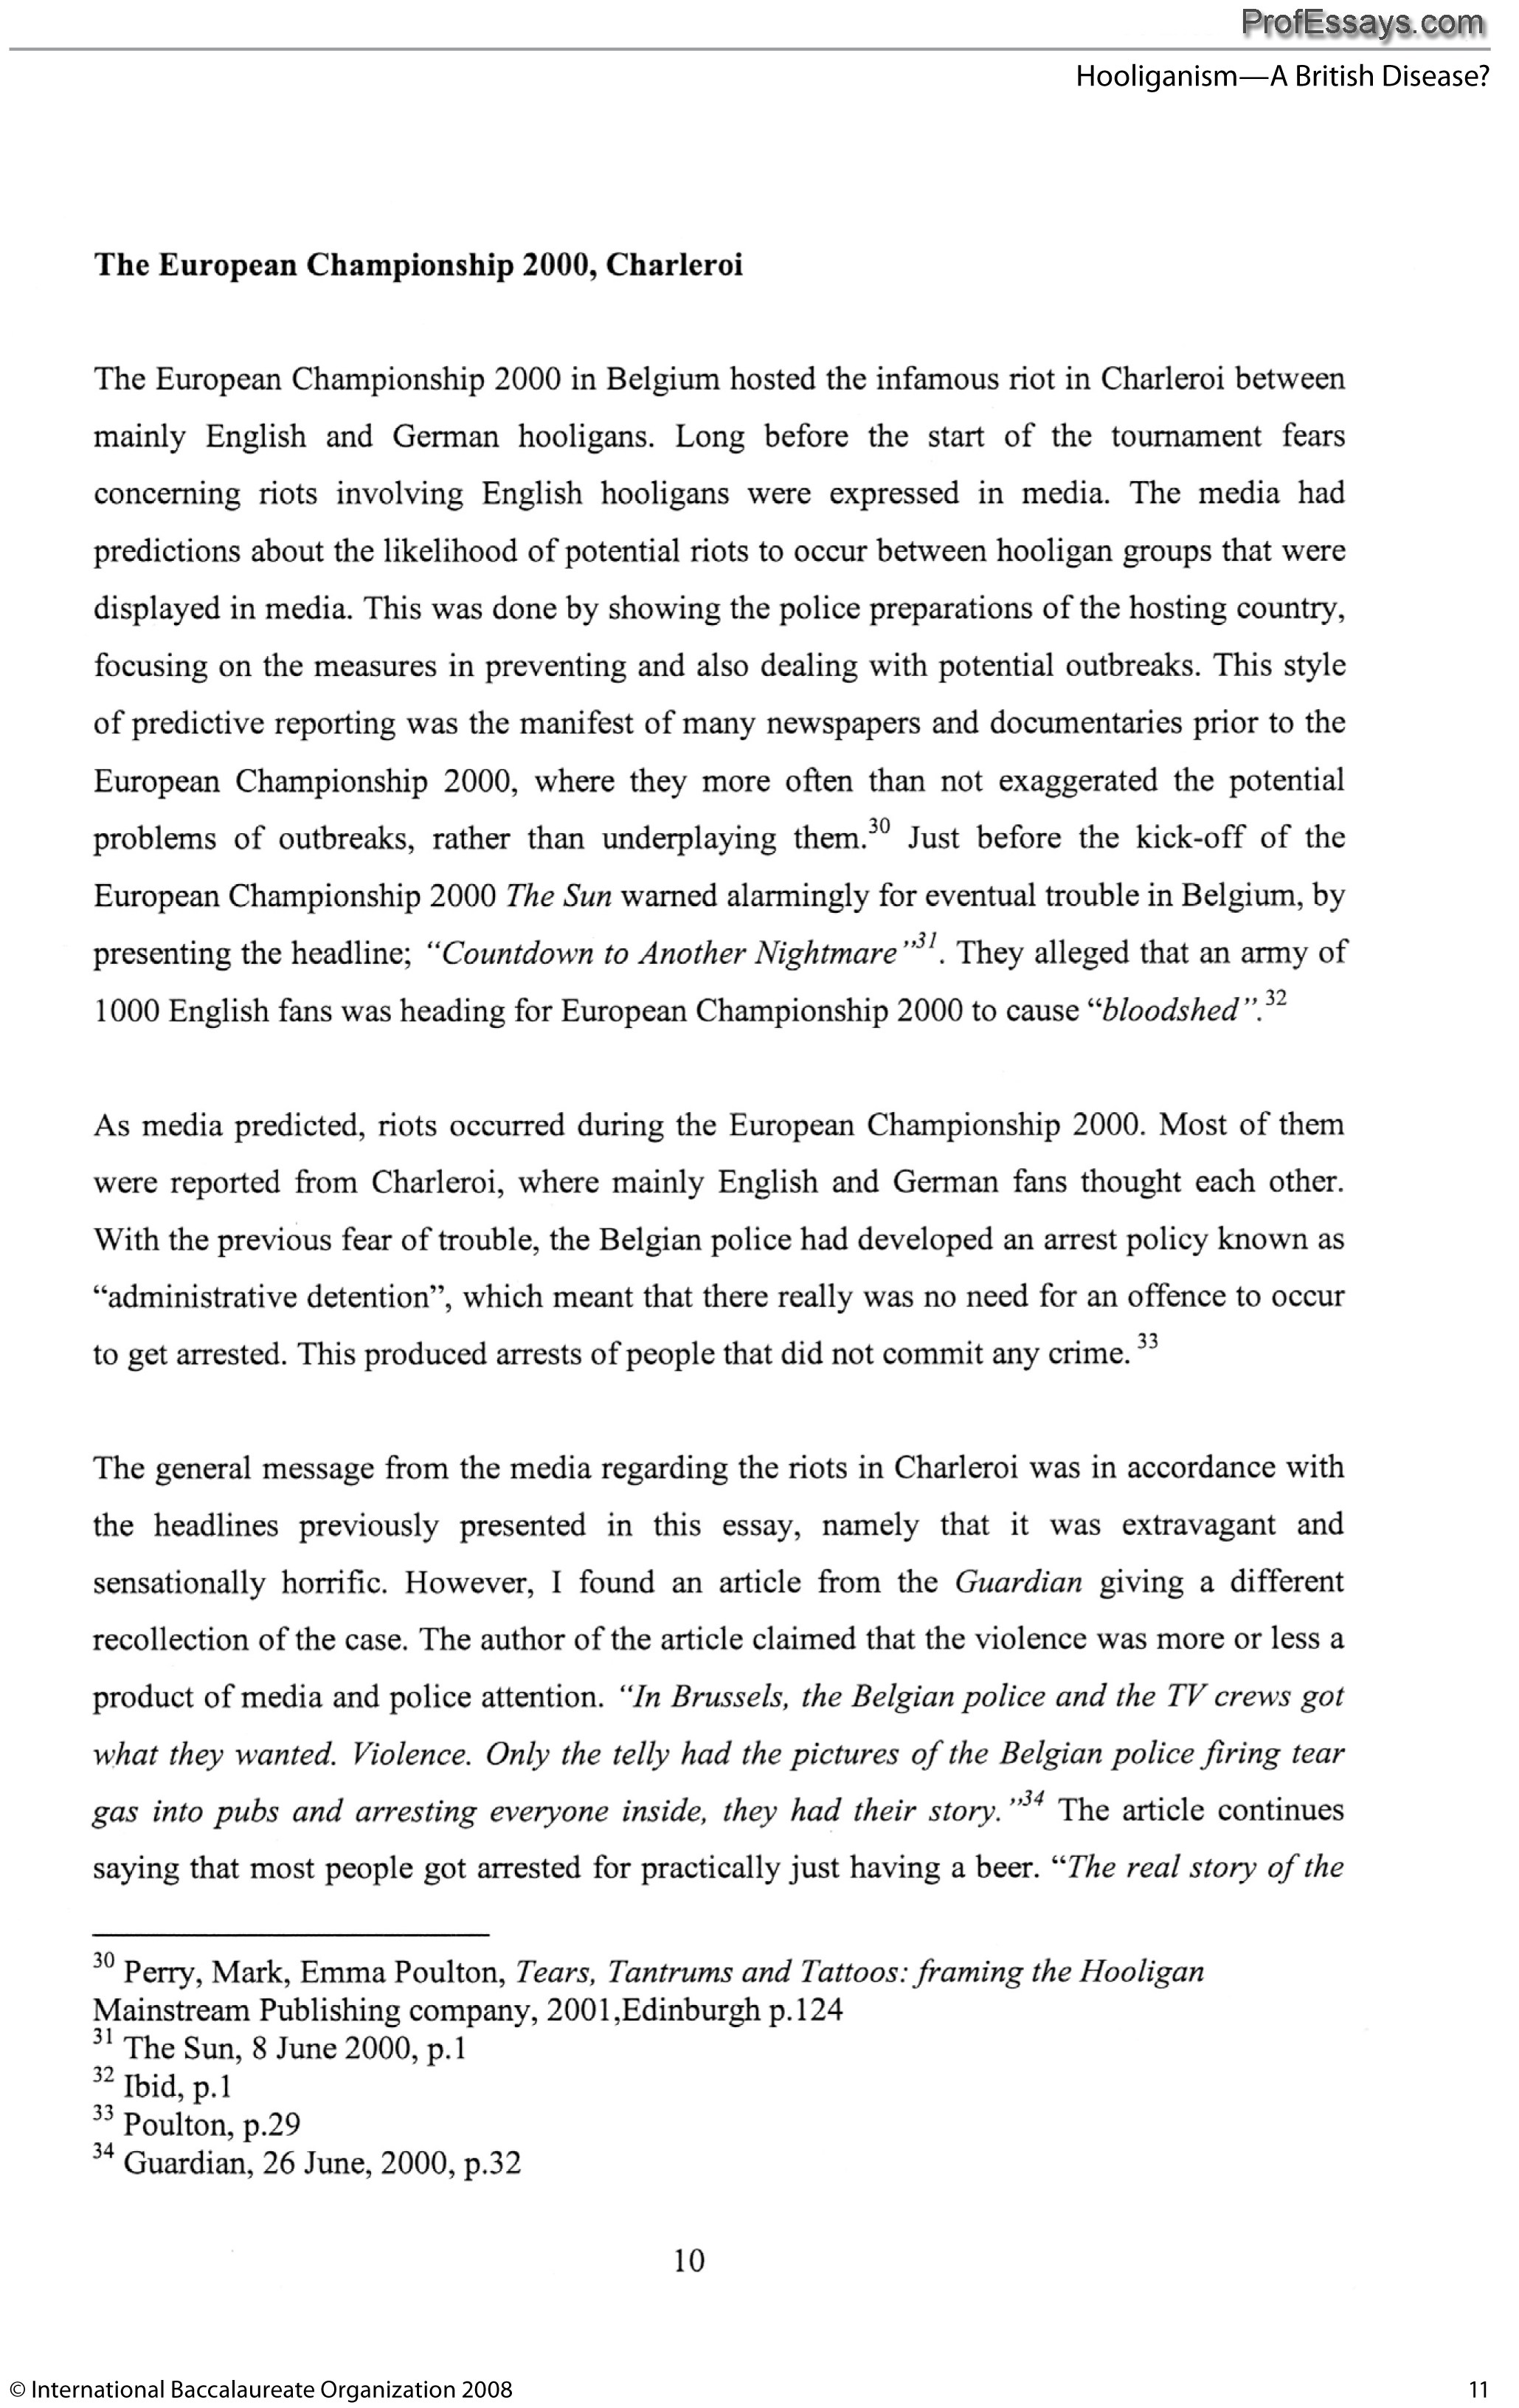 004 Free Write Essay Ib Extended Sample Archaicawful Writing Prompts Examples Website To Essays Full